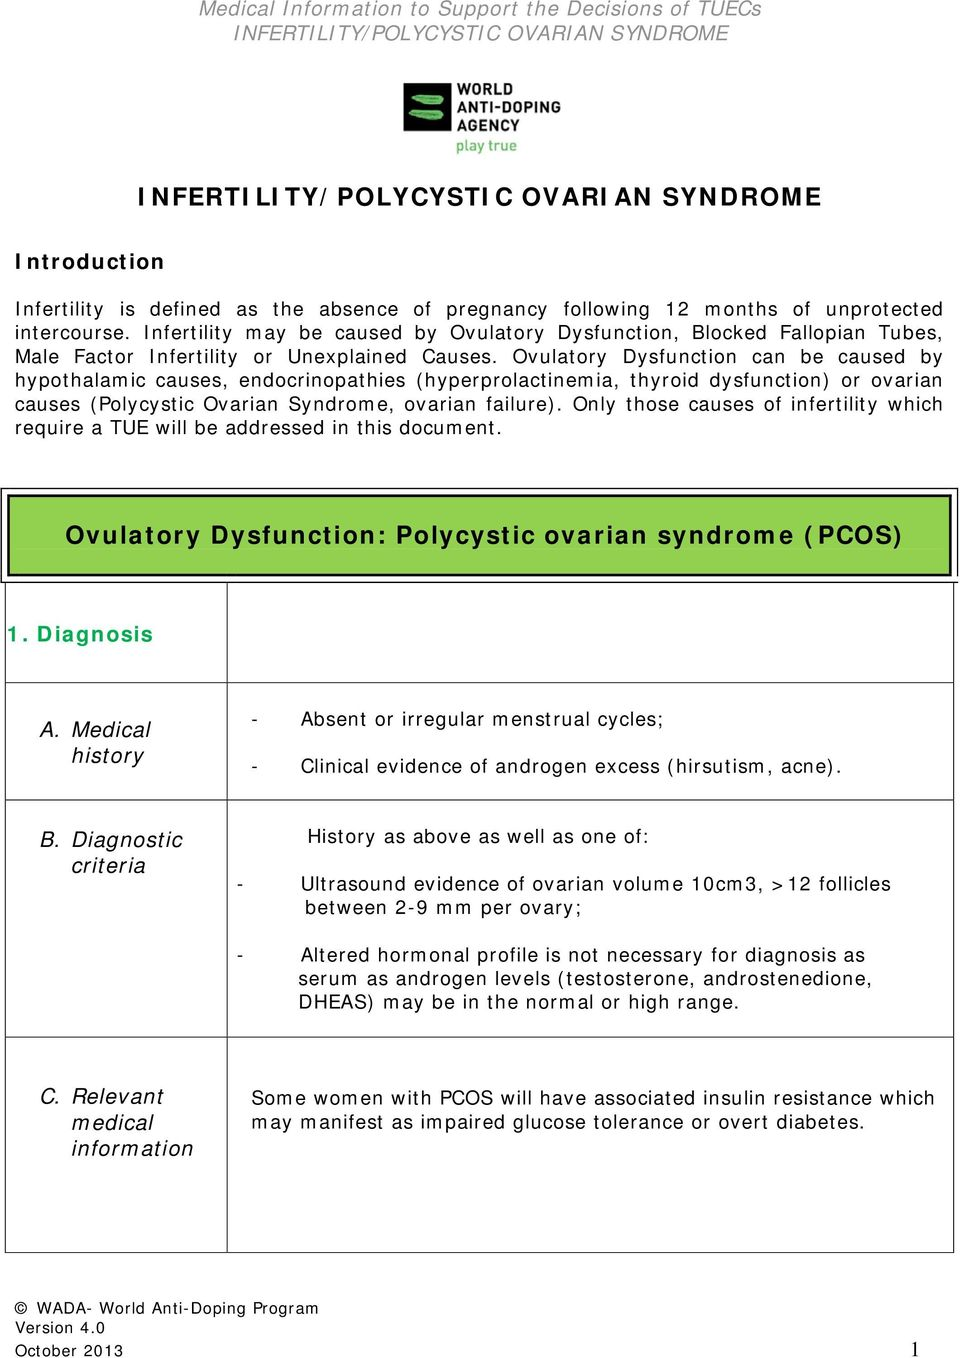 Ovulatory Dysfunction can be caused by hypothalamic causes, endocrinopathies (hyperprolactinemia, thyroid dysfunction) or ovarian causes (Polycystic Ovarian Syndrome, ovarian failure).